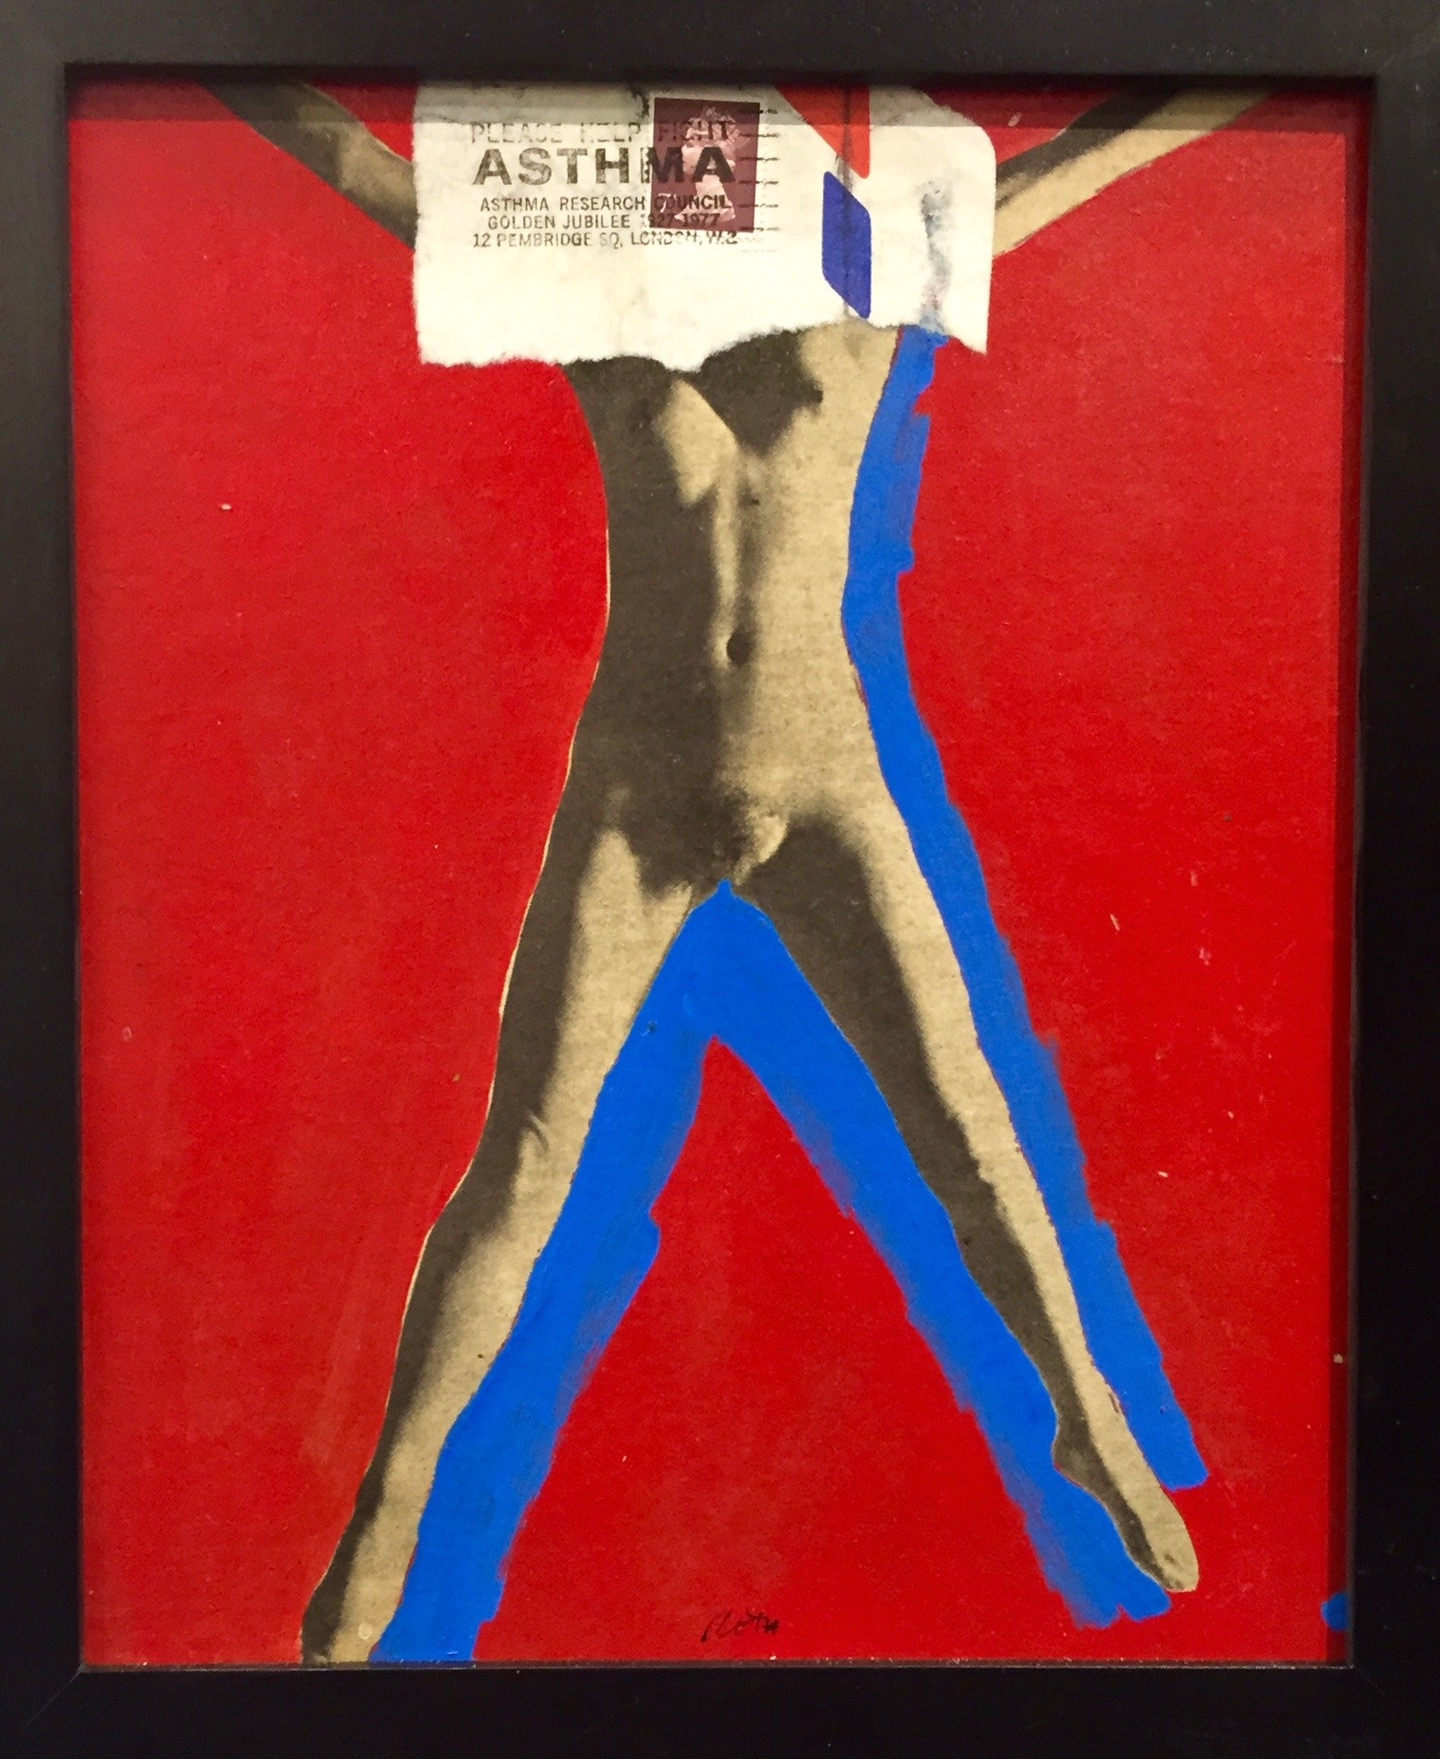 Jack Roth, from a selection of collages